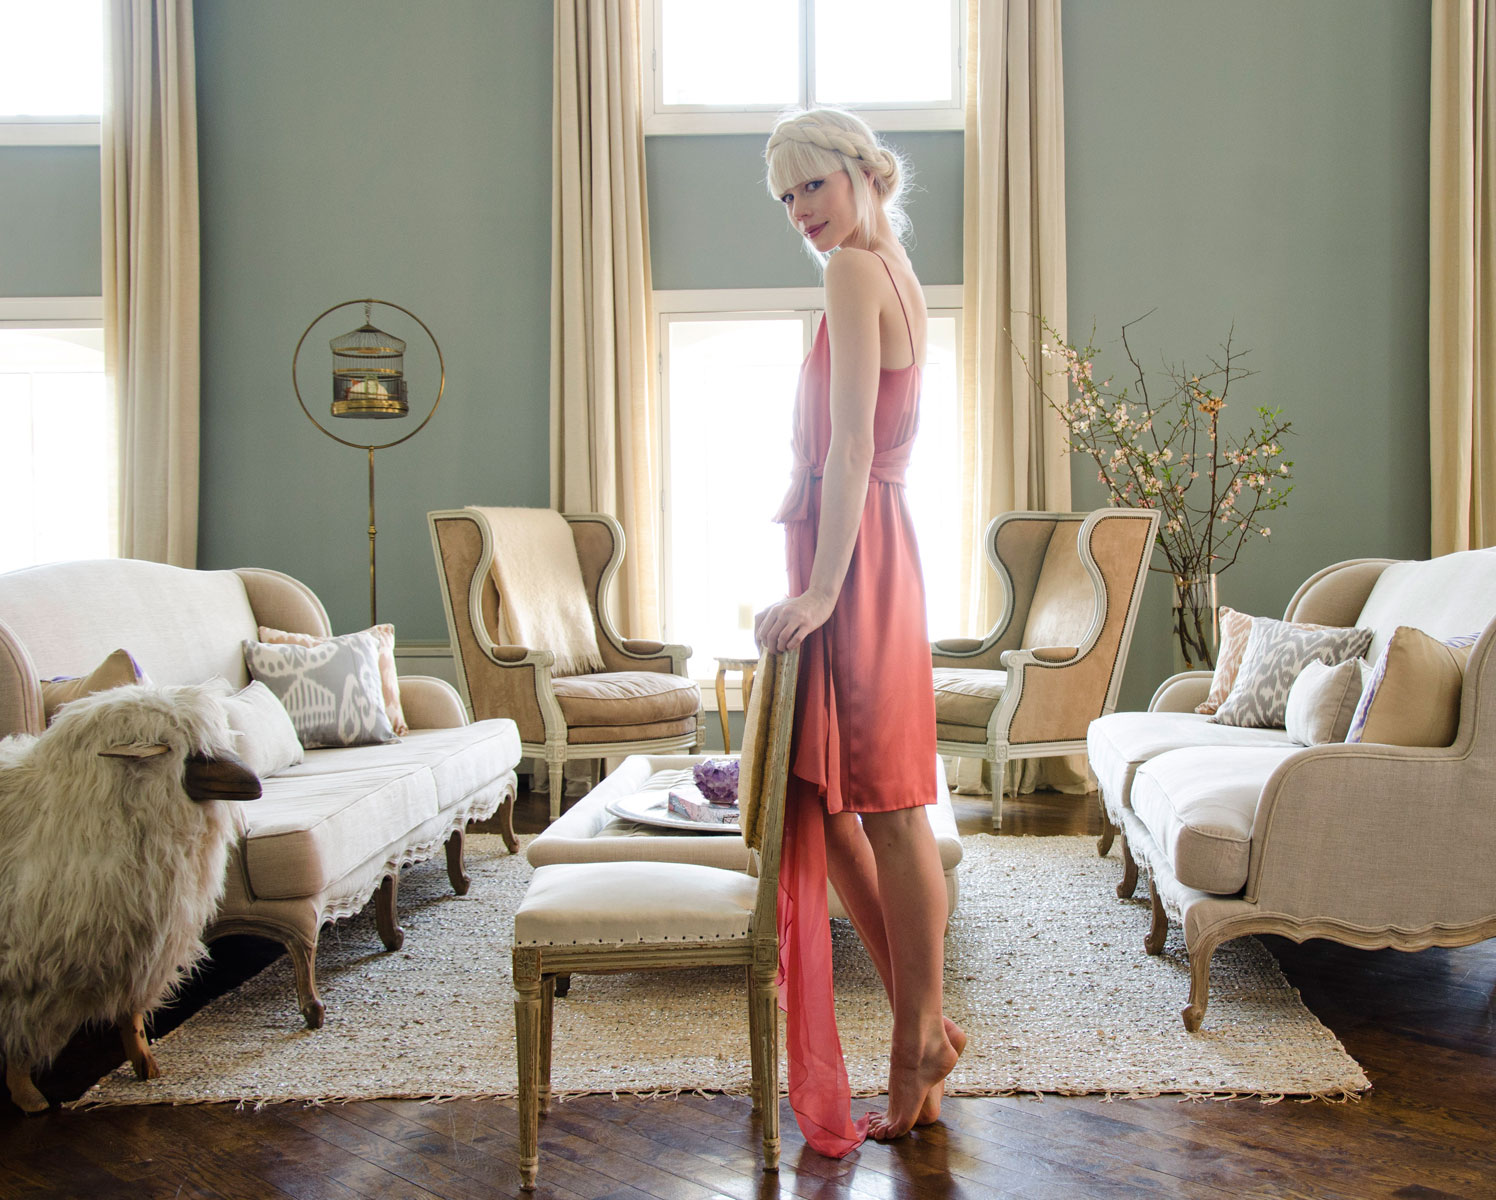 At home with Erin Fetherston by Claiborne Swanson Frank for Vogue